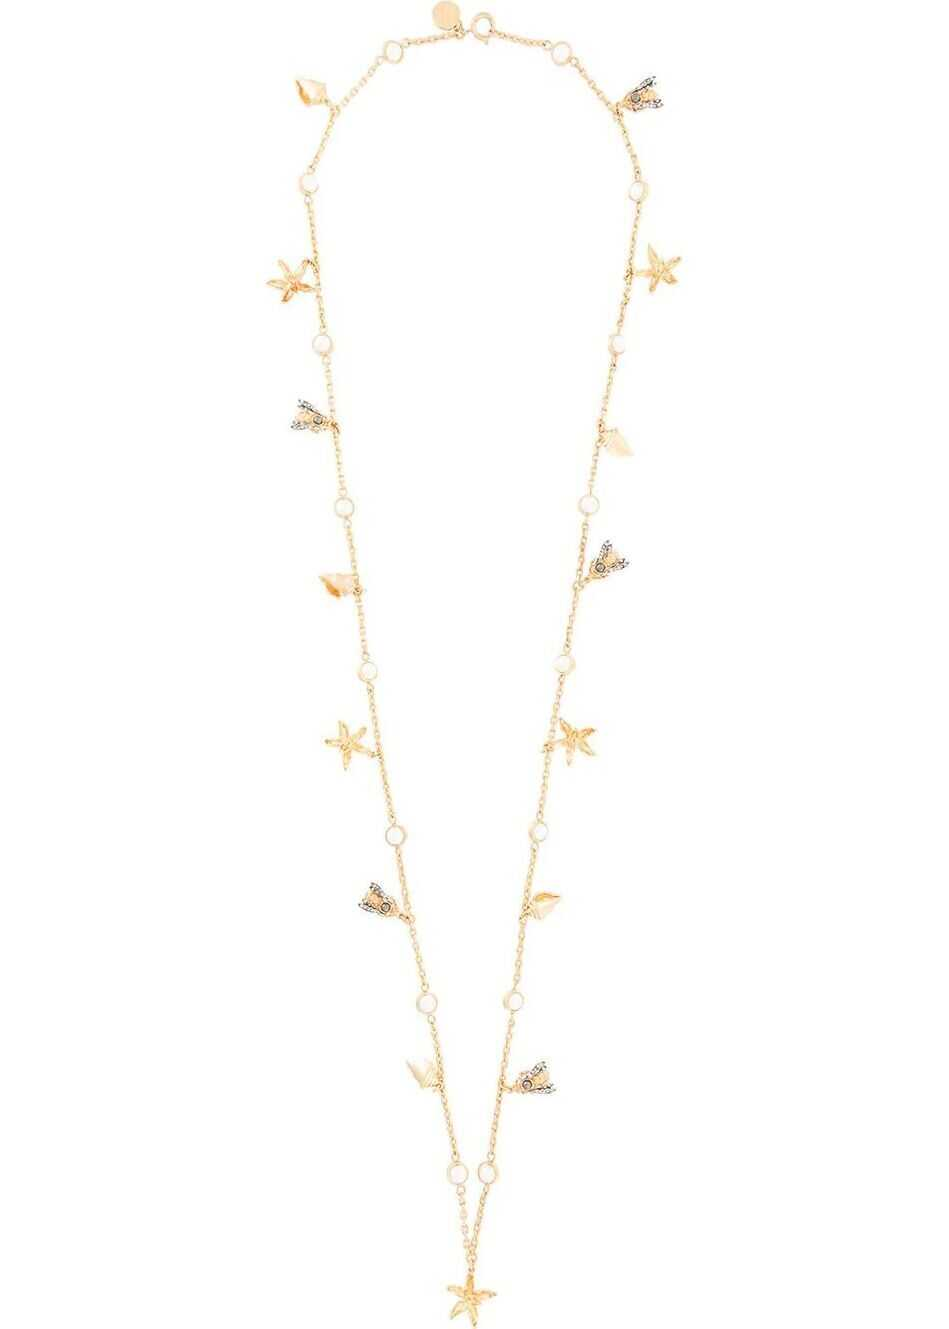 Tory Burch Metal Necklace GOLD